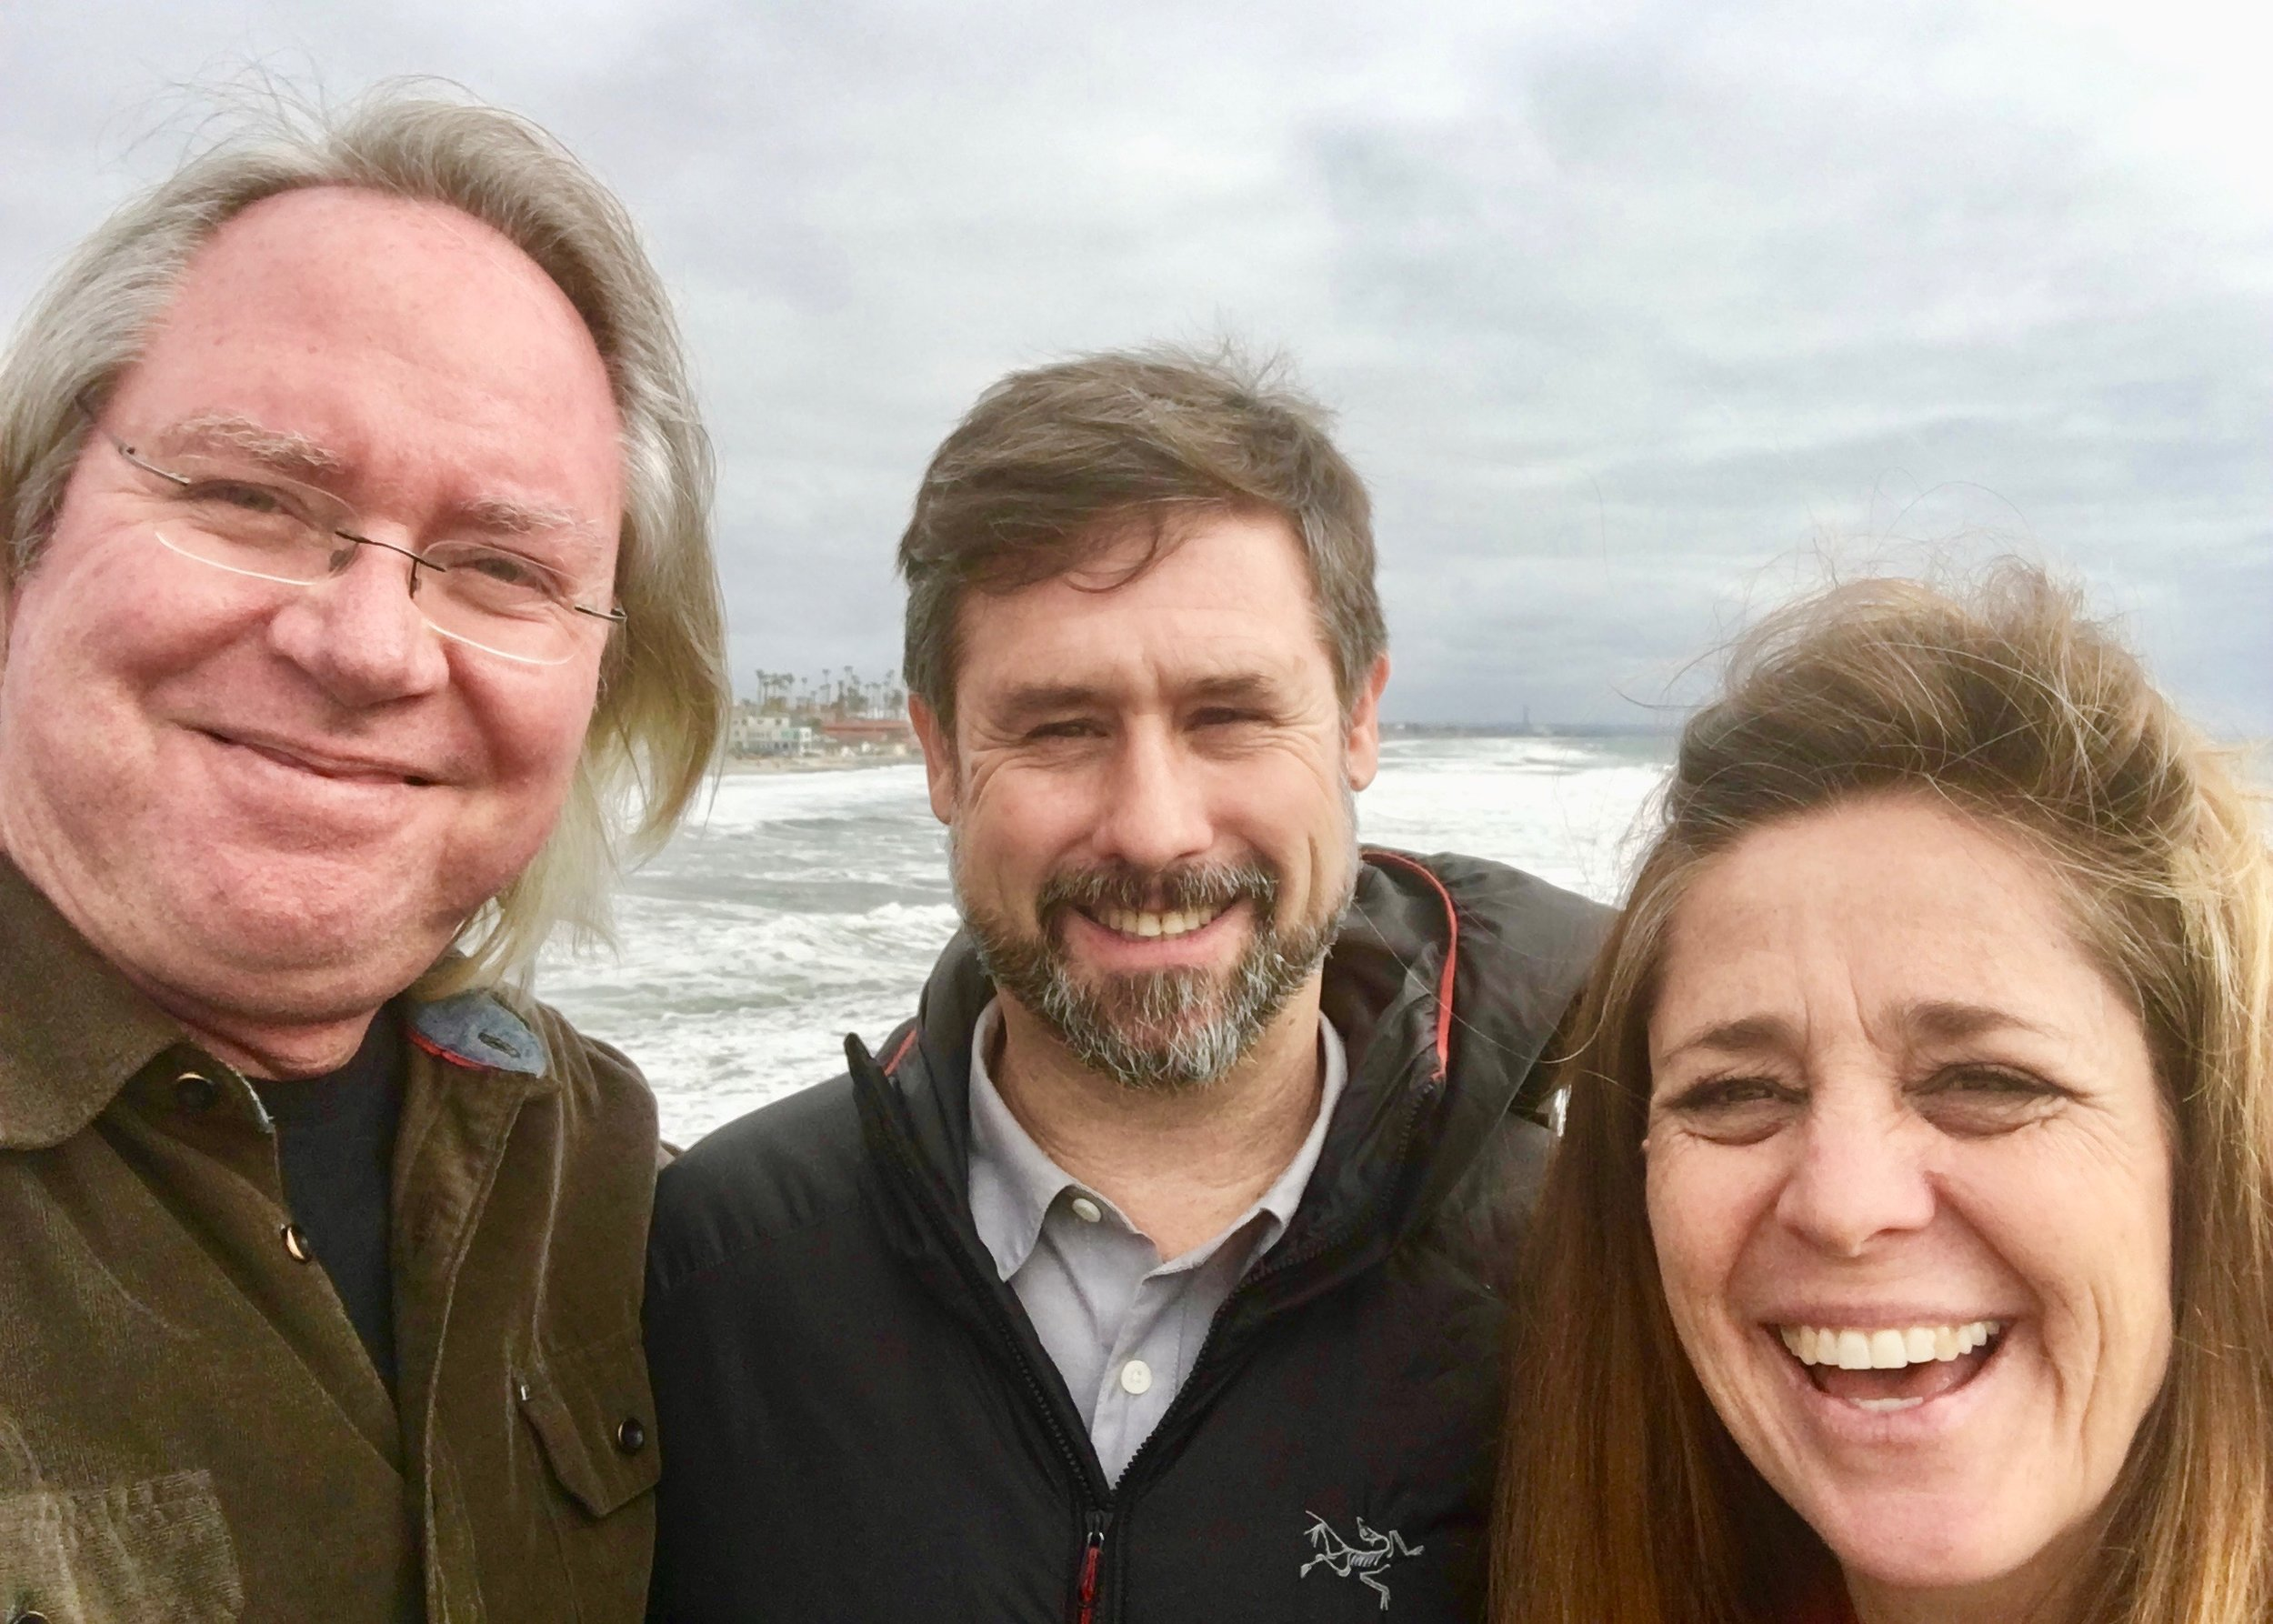 Christine & I here with  Leonard Hays . Leonard and I are curating a fresh Gathering for Artists this year called   Artists Living Loved.